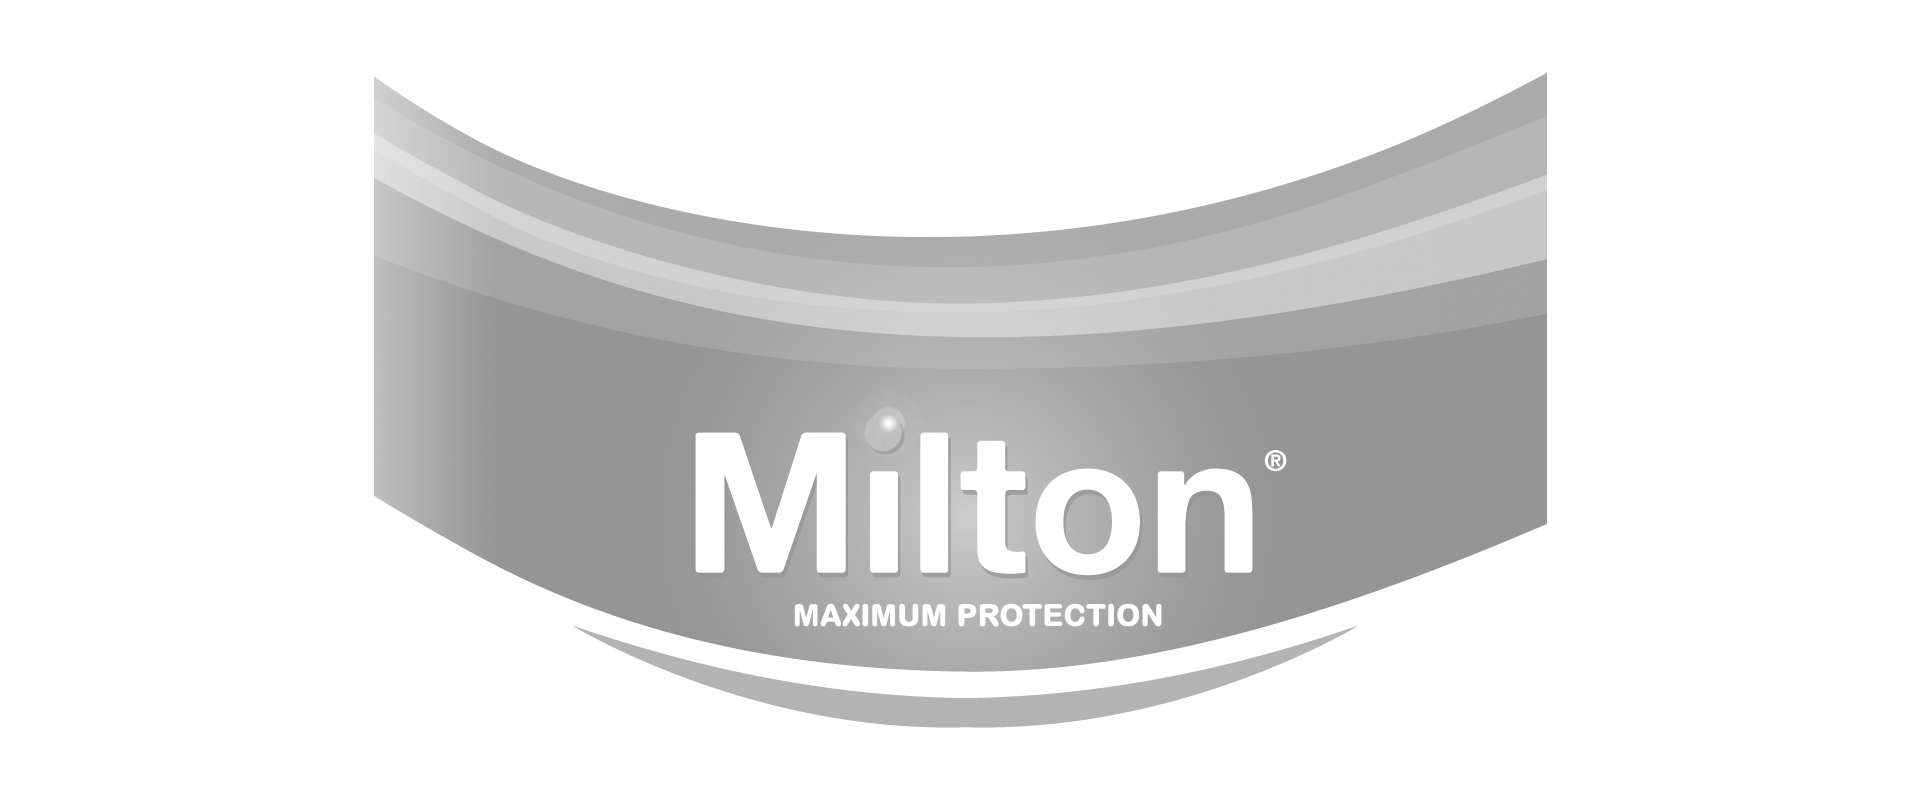 Studio 2 Media have produced for Milton